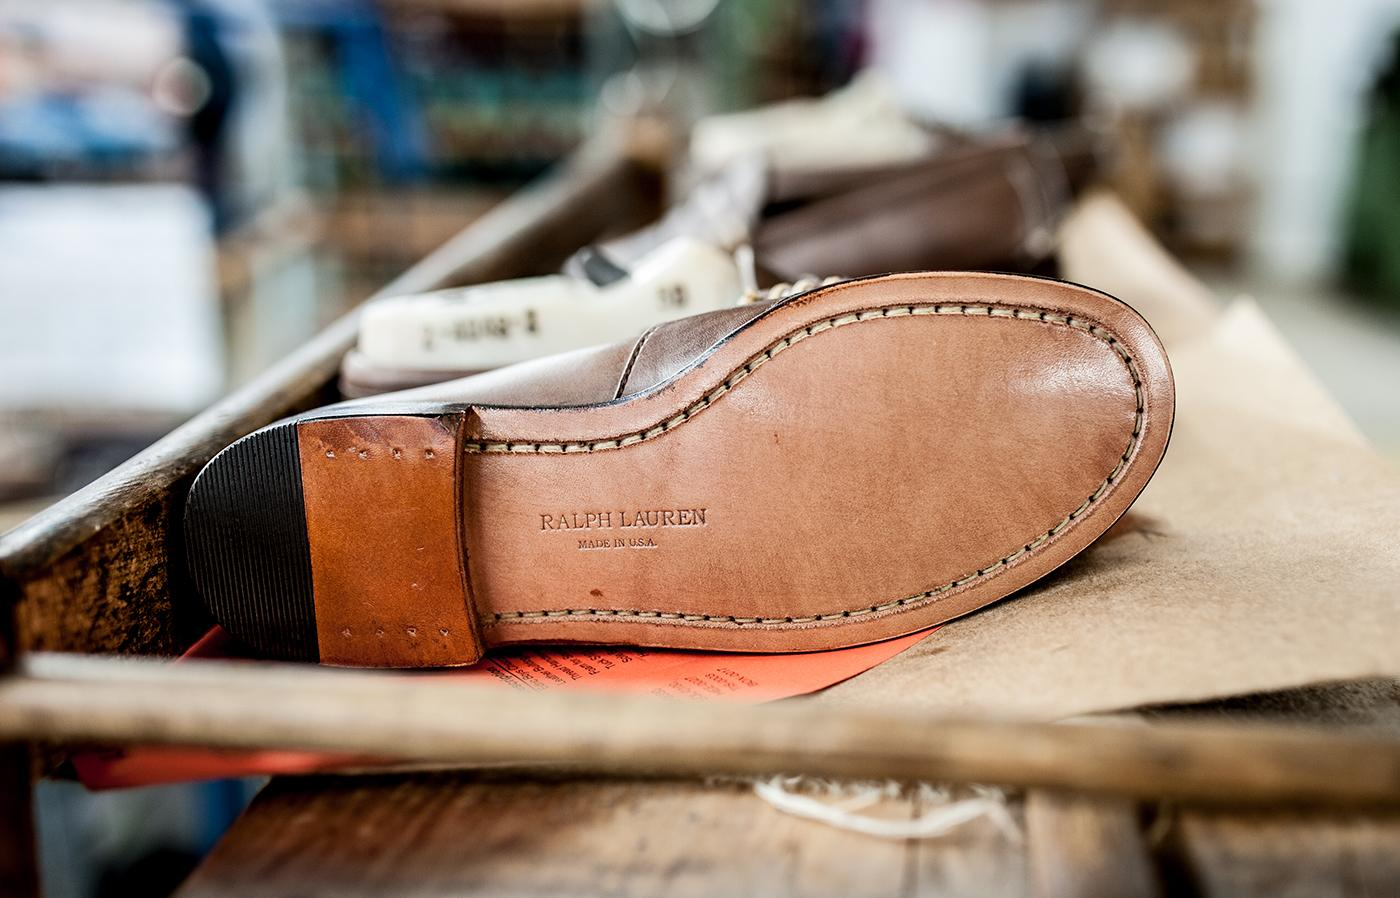 The final piece of the Edric: a traditional leather sole, stitched directly to the upper so it can be resoled endlessly.